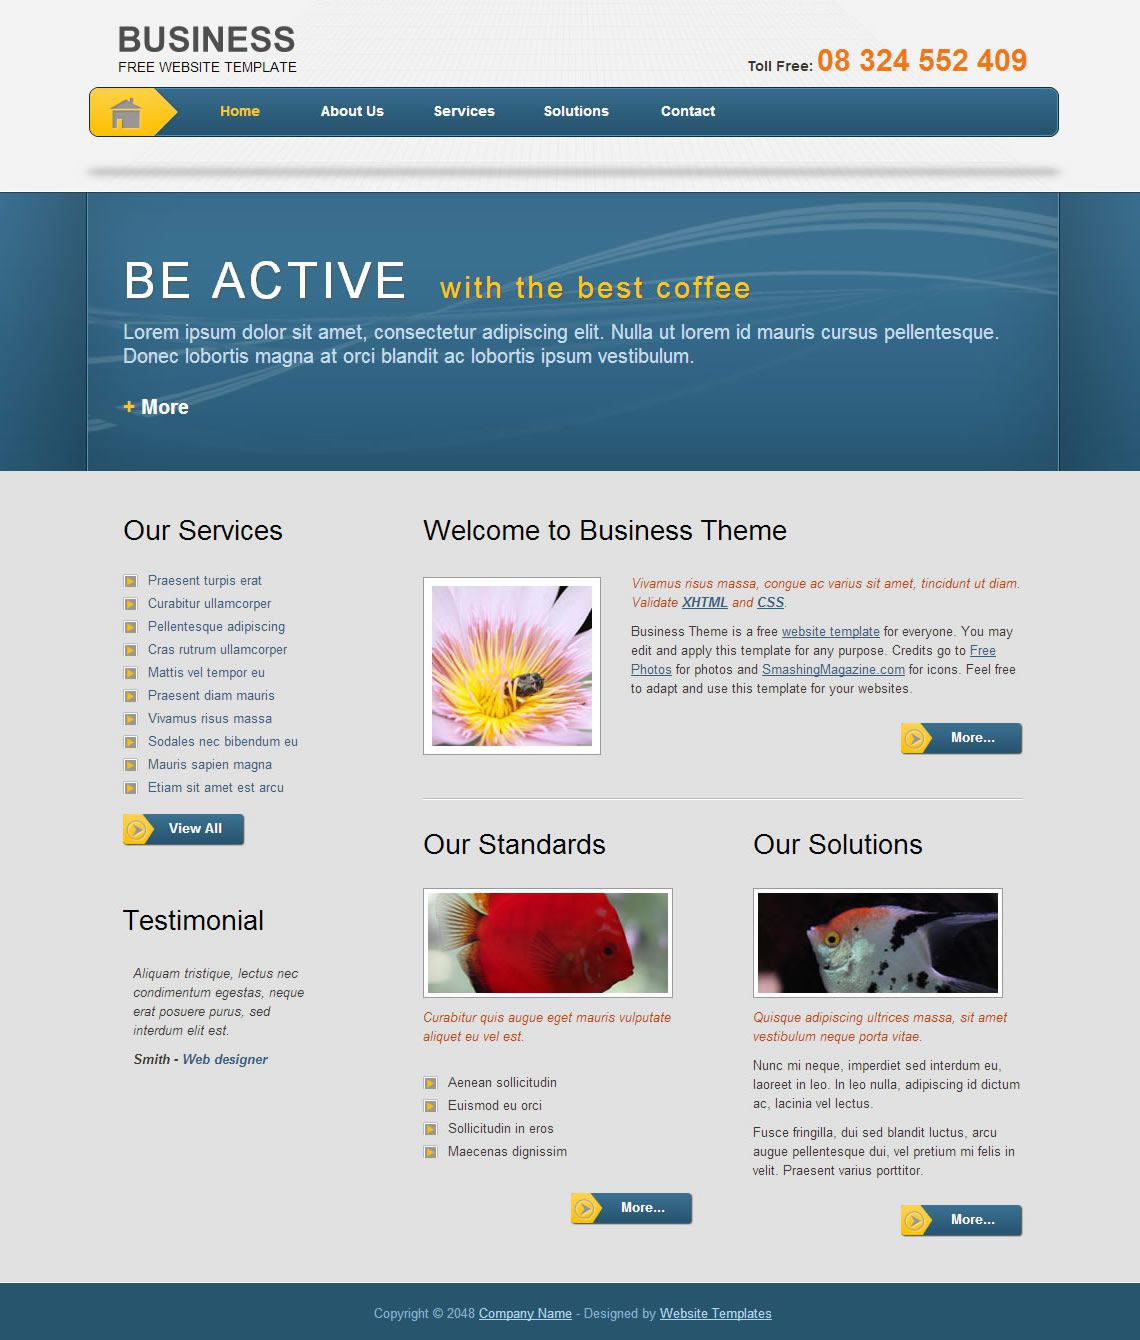 000 Remarkable Busines Html Template Free Download With Cs Highest Clarity  Css Responsive WebsiteFull